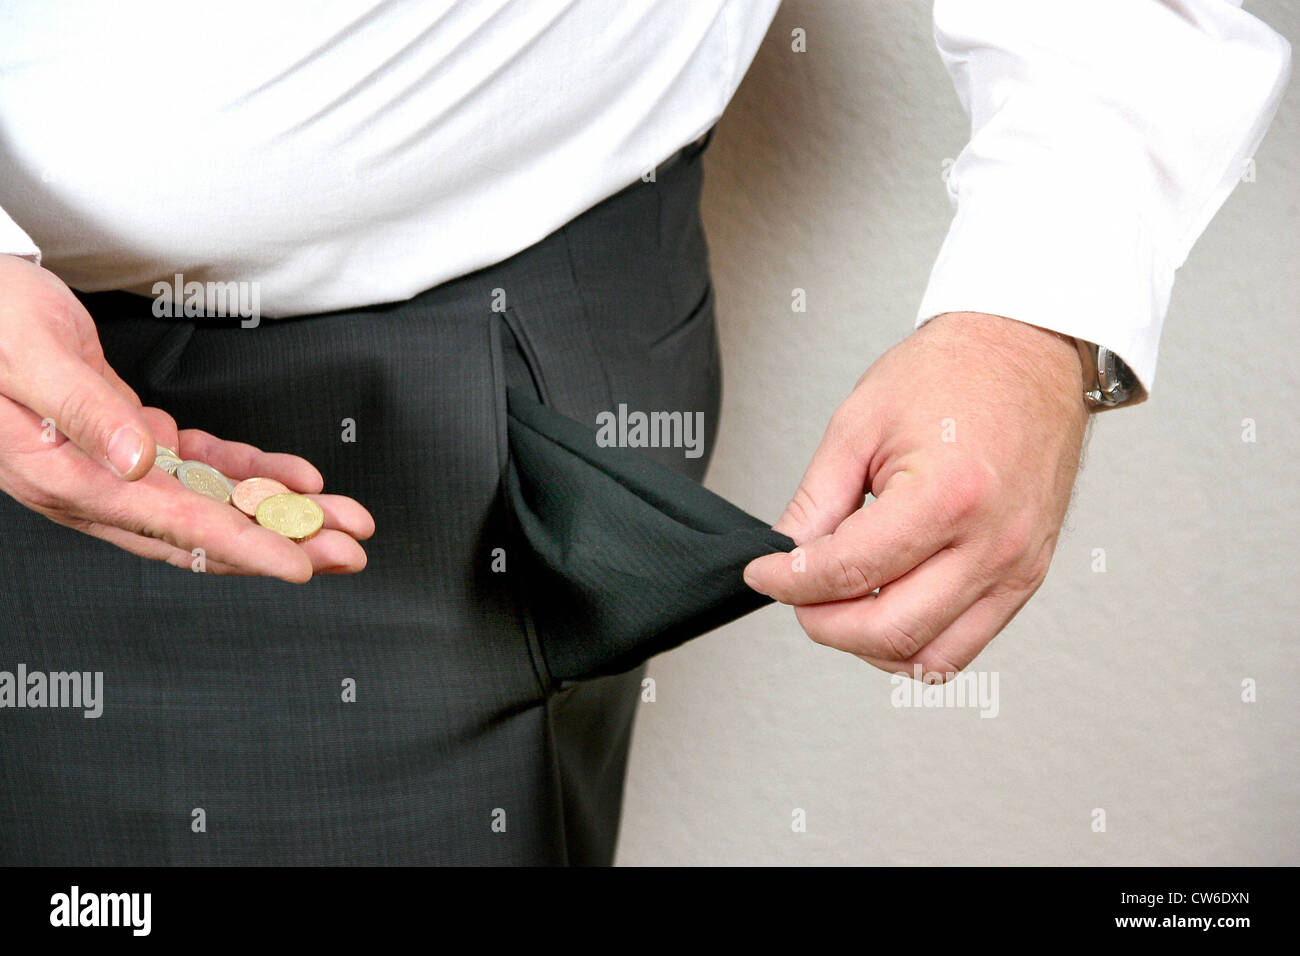 Empty trouser pocket - Stock Image